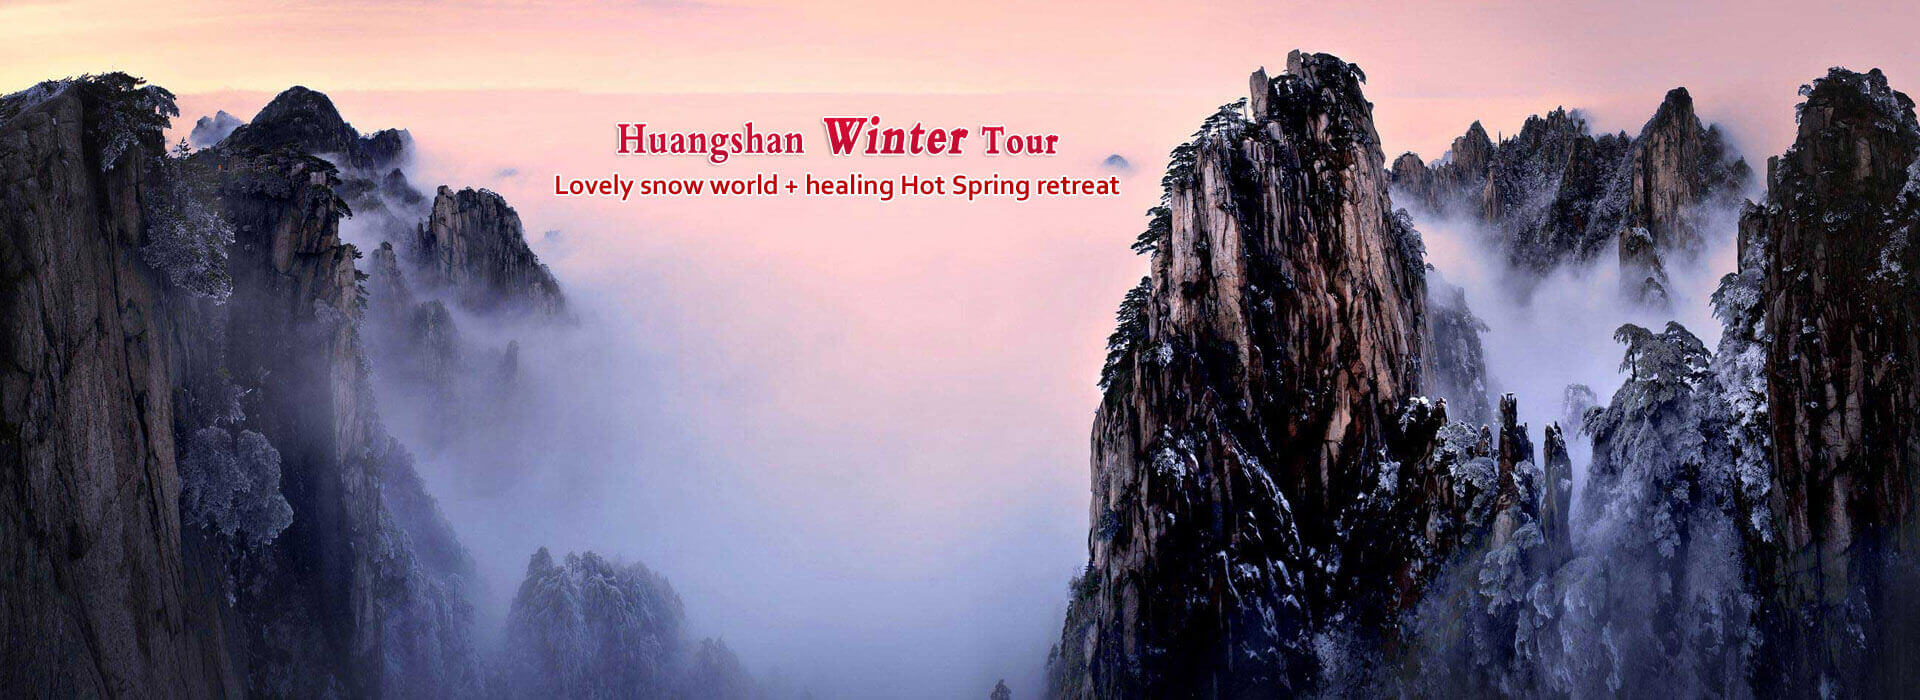 China Tour Packages 2019